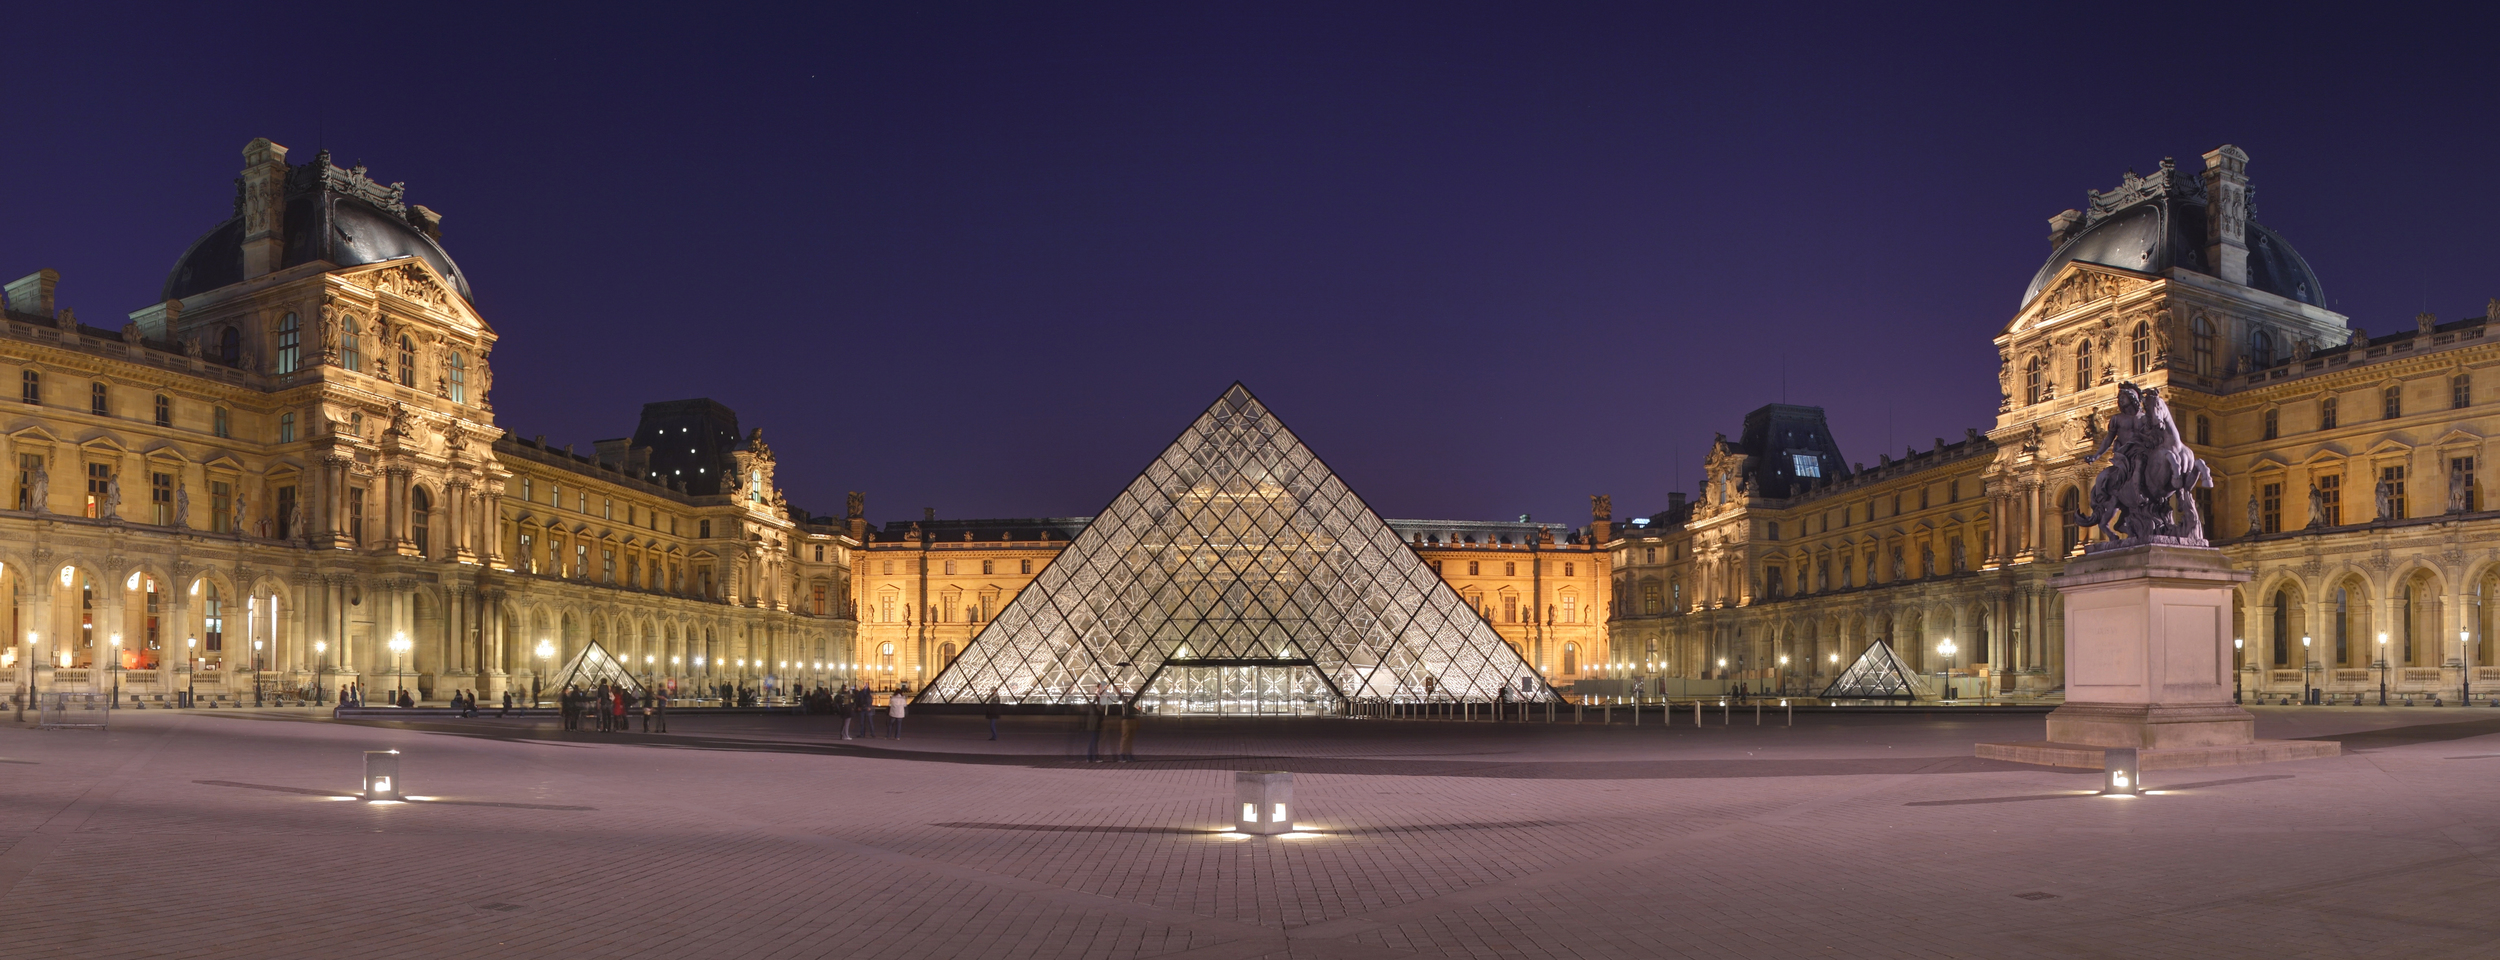 "Source: ""Louvre Museum Wikimedia Commons"" by Benh LIEU SONG - Own work. Licensed under CC BY-SA 3.0 via Wikimedia Commons"